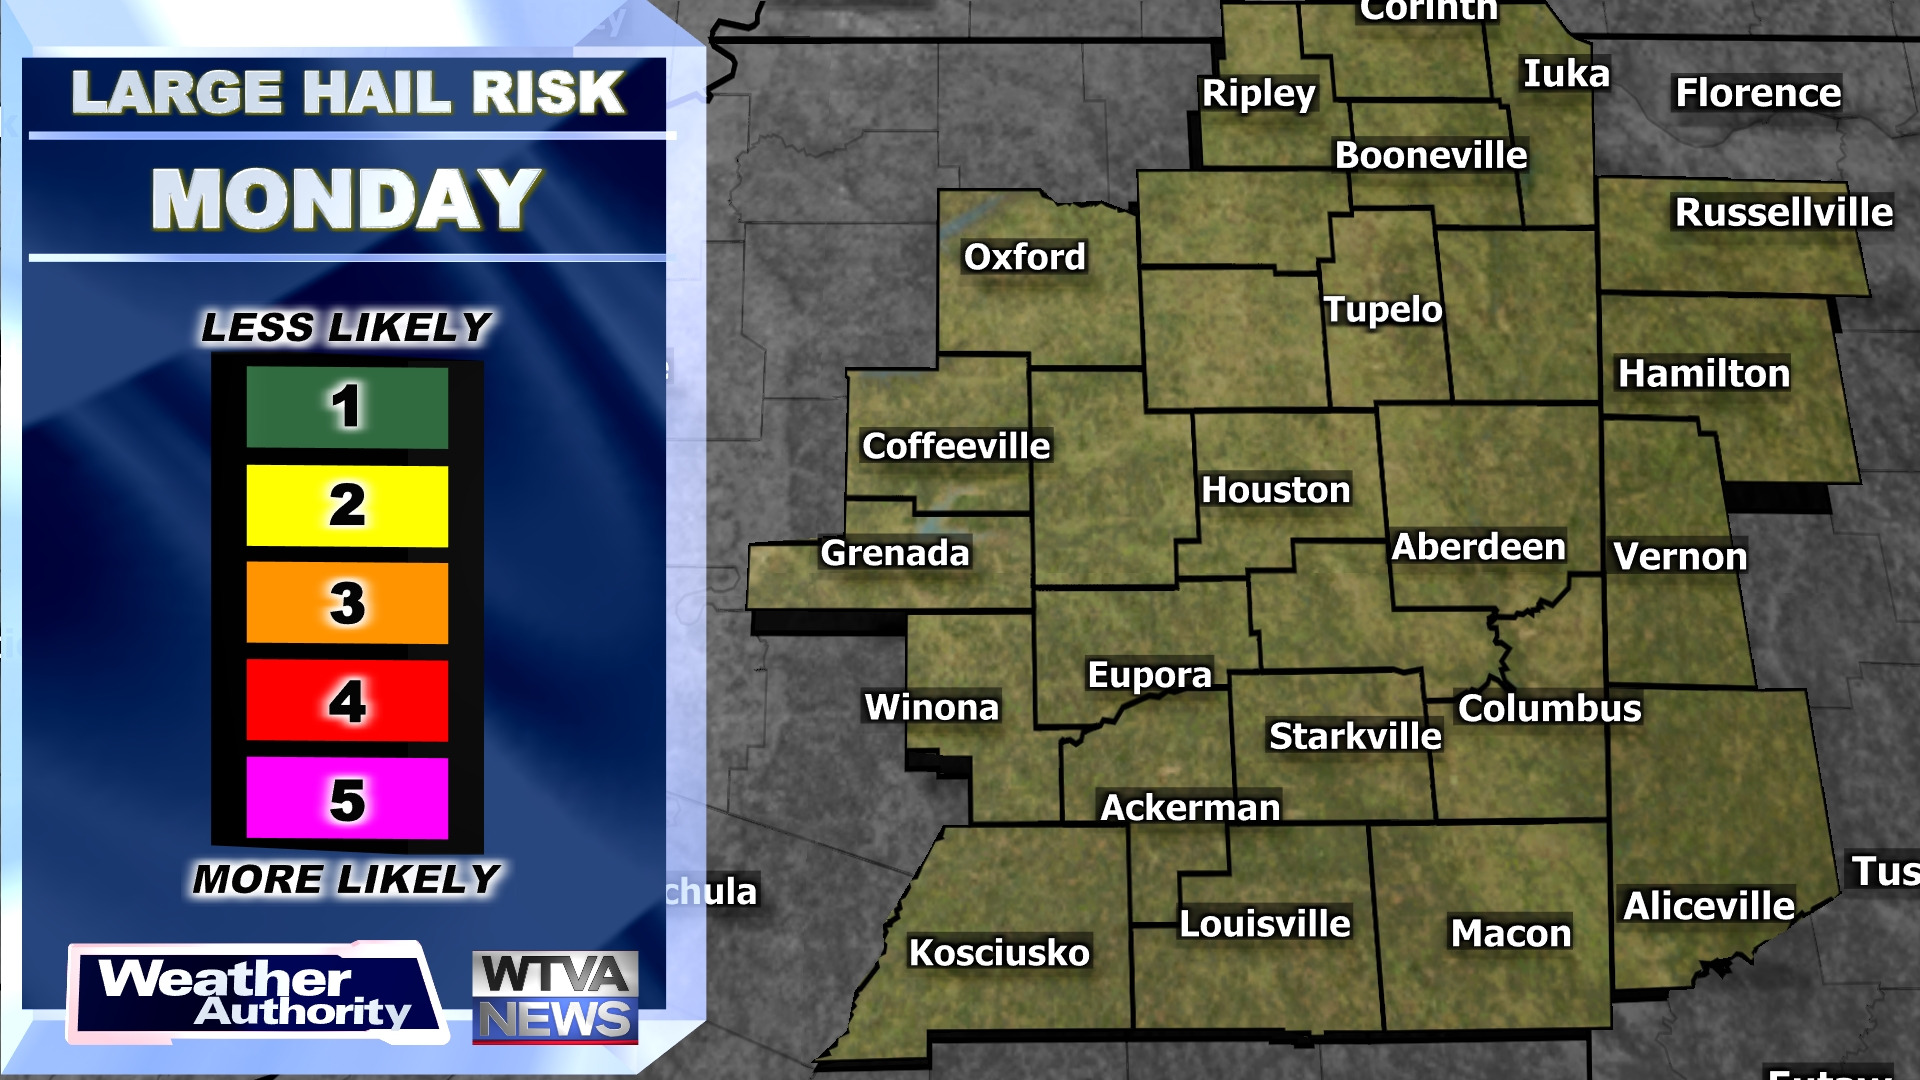 Today's Large Hail Risk